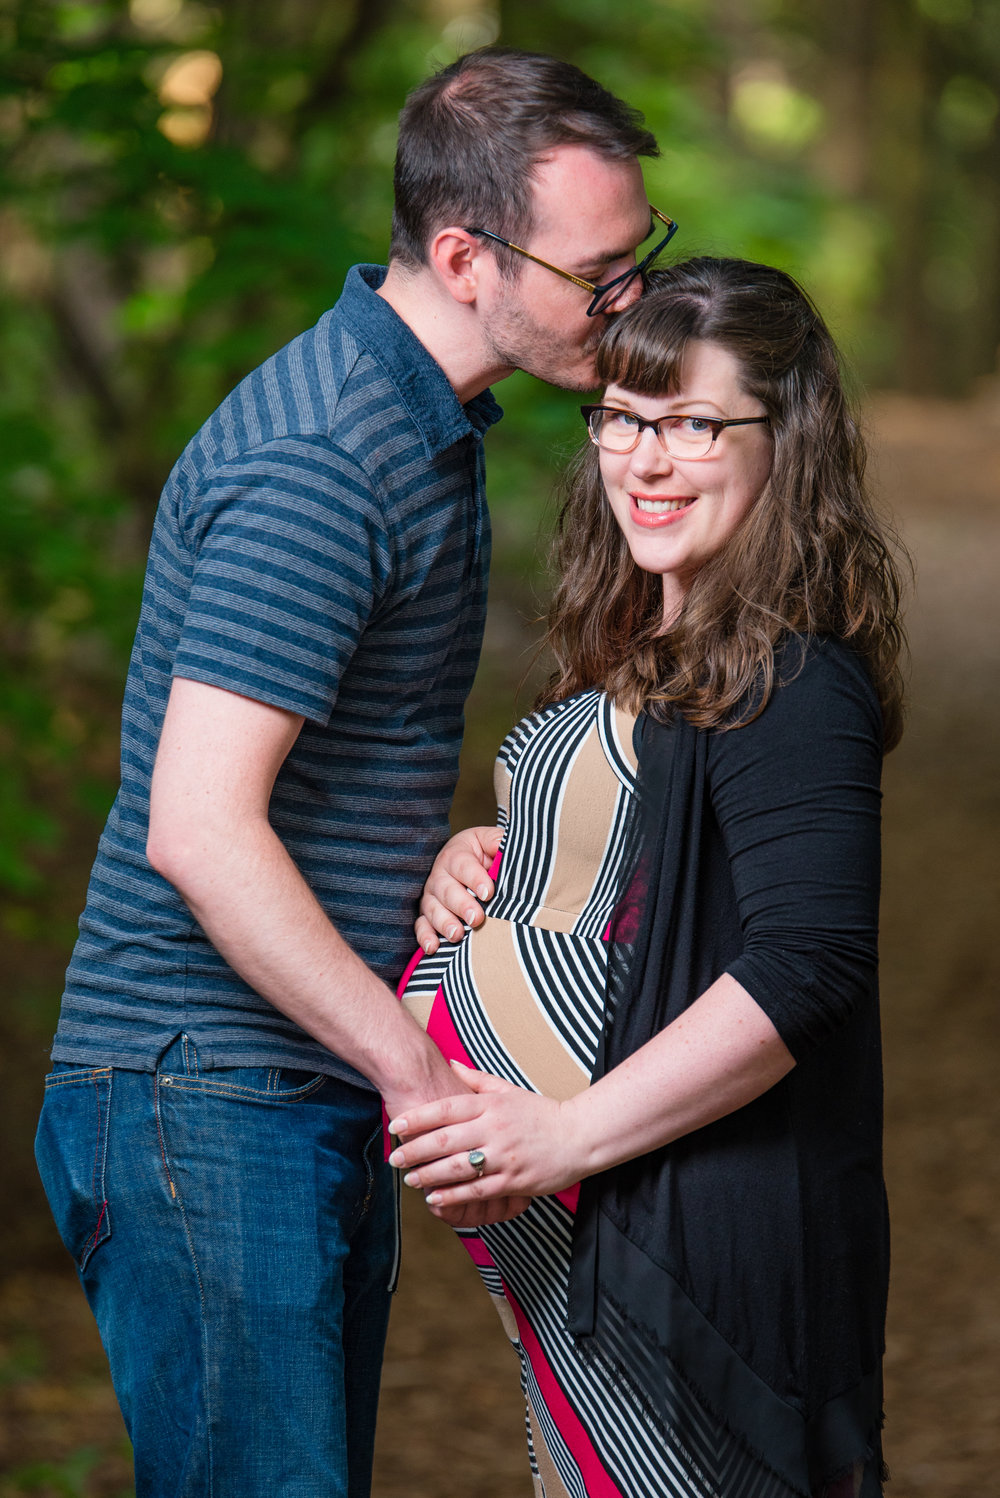 2018_June_23-06_23_2018_Ben_Anna_Maternity-48879-Edit.jpg